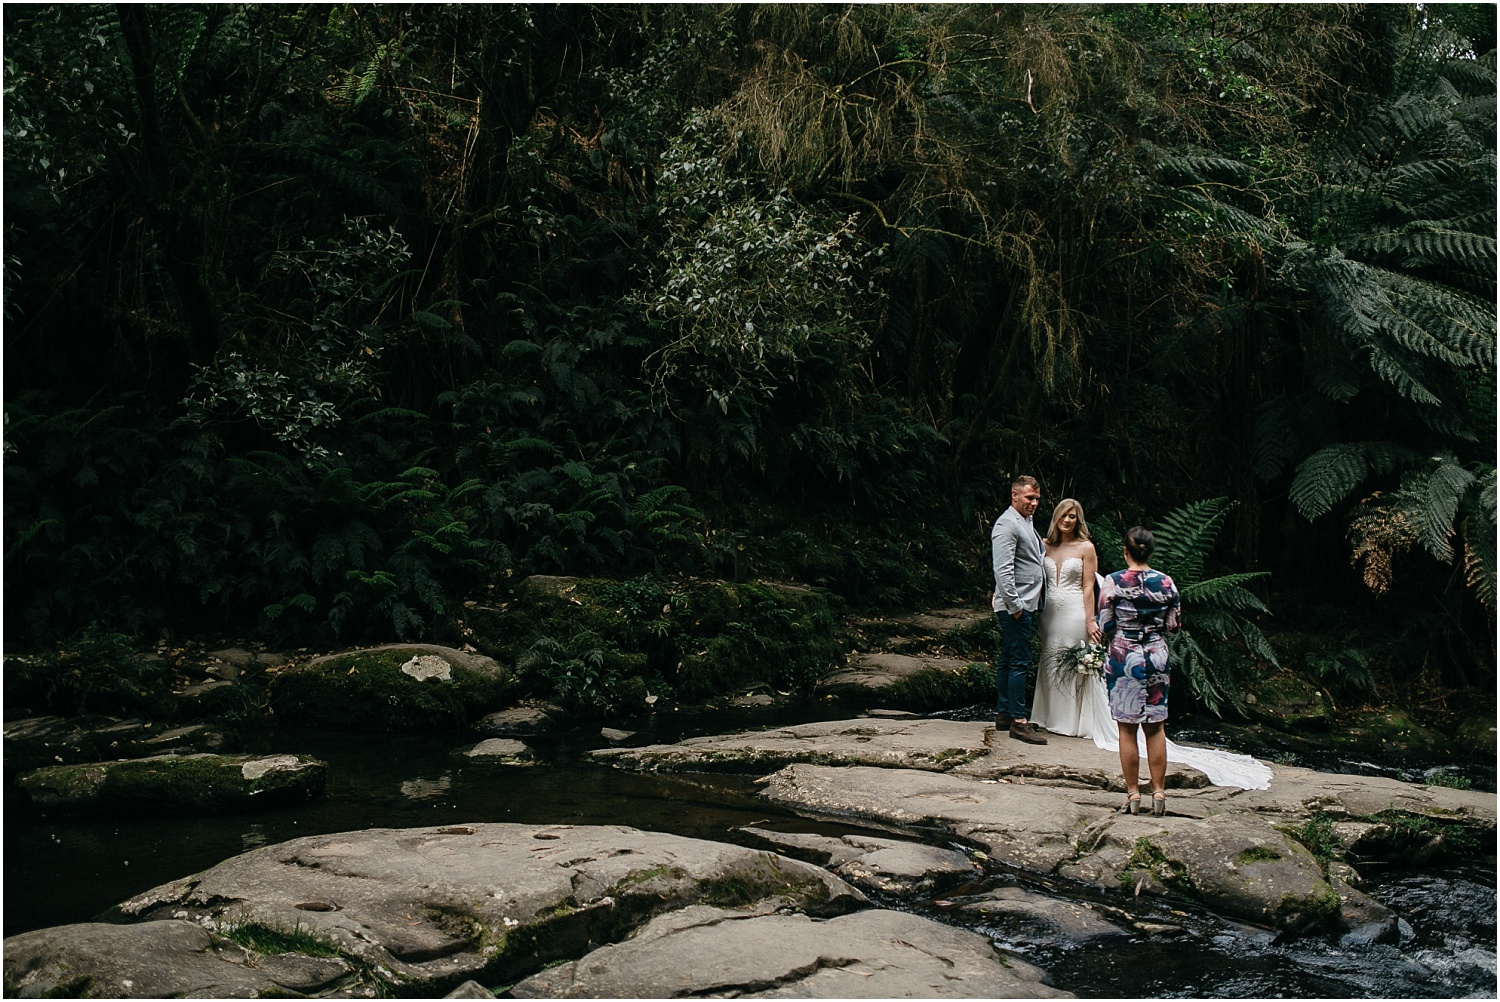 Renee and Ash's real elopement in Lorne on the Great Ocean Roadwith the ceremony at erskin falls._0072.jpg